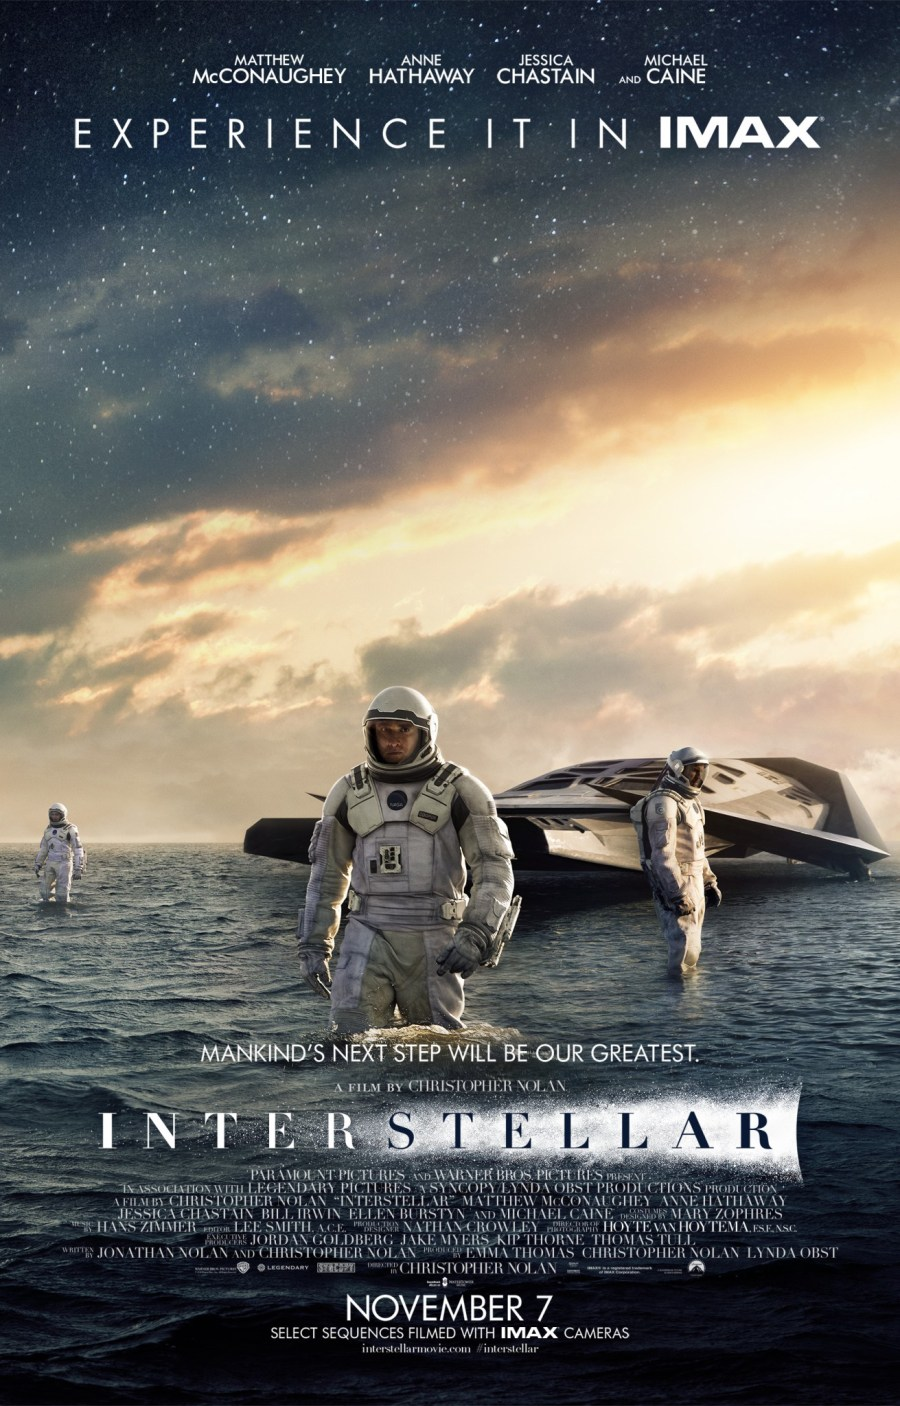 interstellar-imax-poster